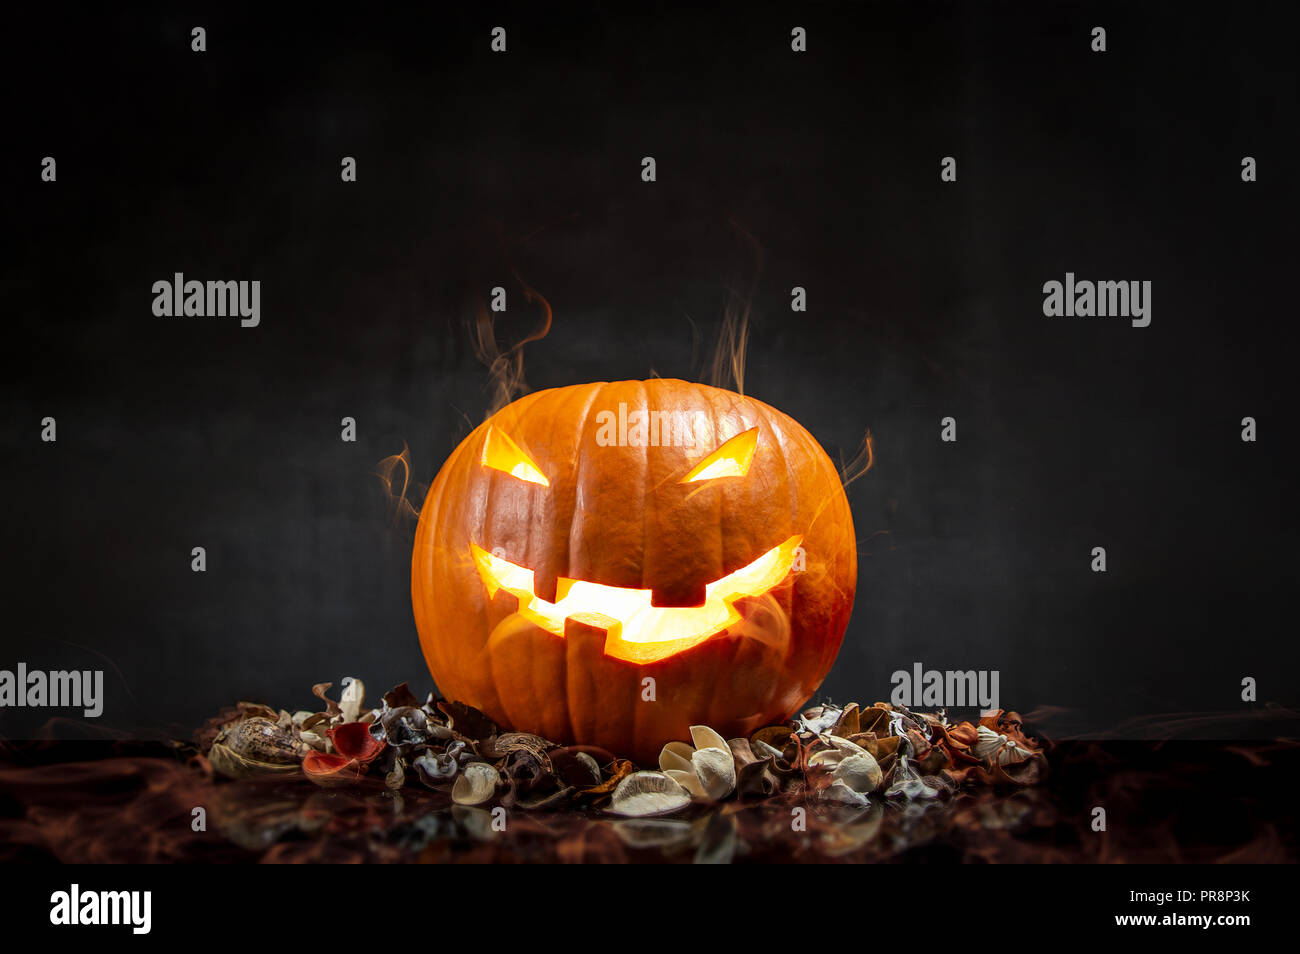 Composition of pumpkin on black background with glowing smoke. Horizontal orientation - Stock Image